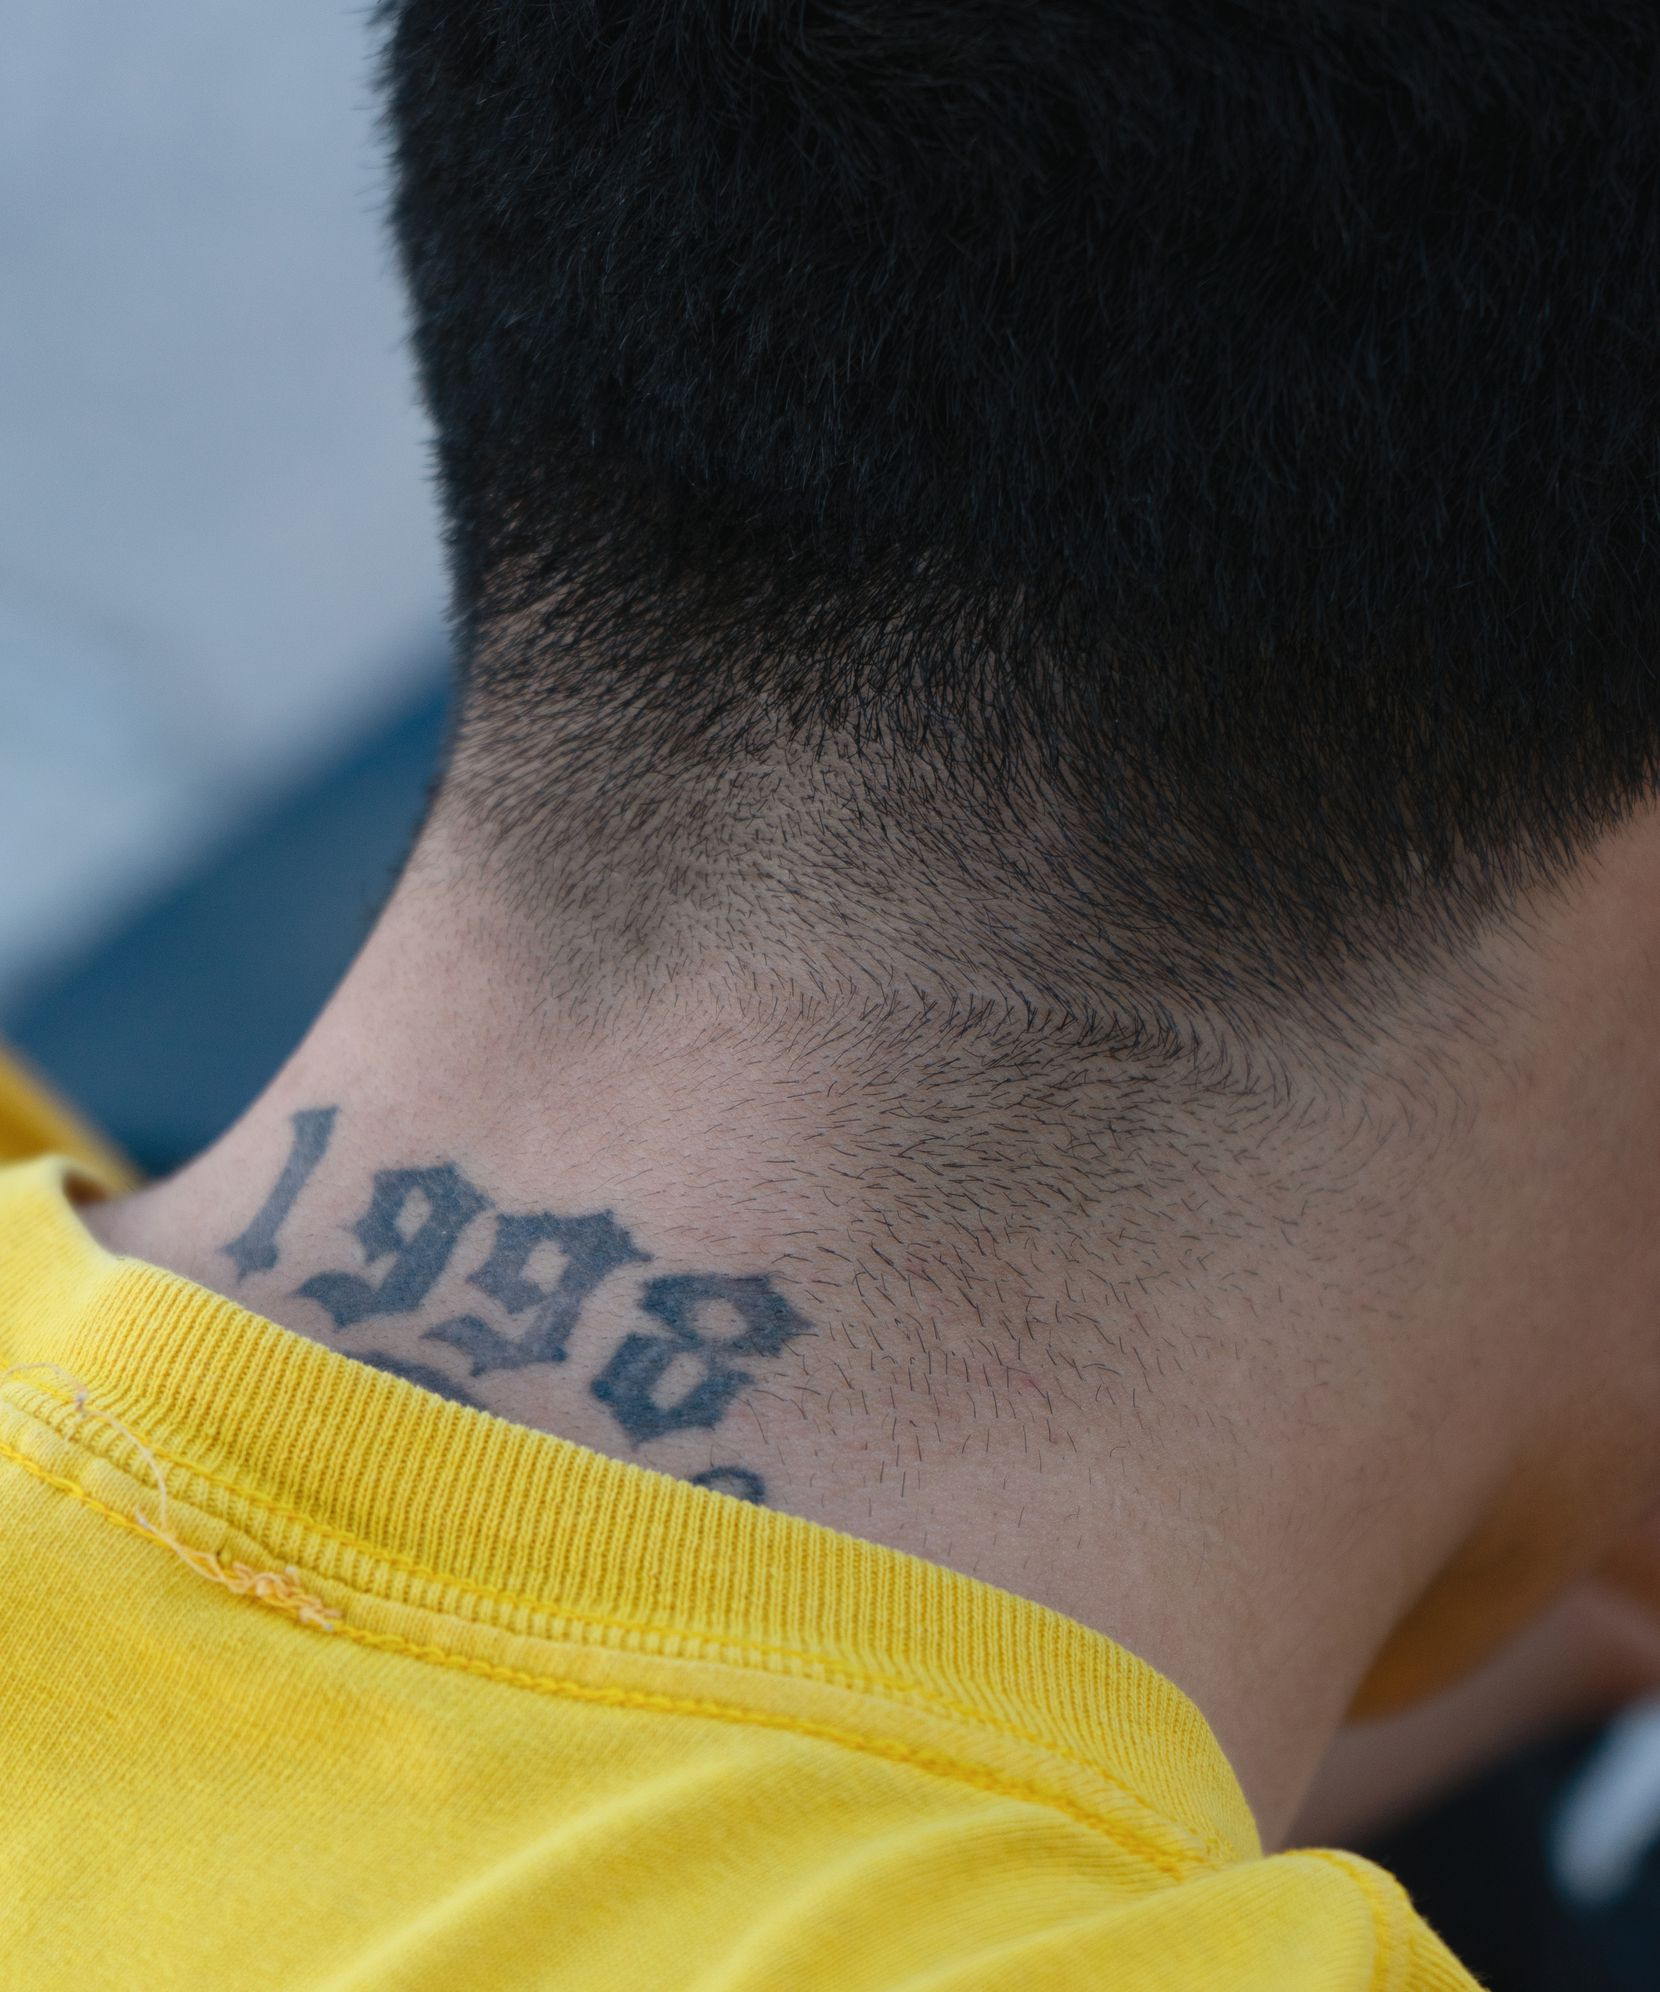 A photo by Fort Worth photographer Raul Rodriguez shows a skateboarder's tattoo.